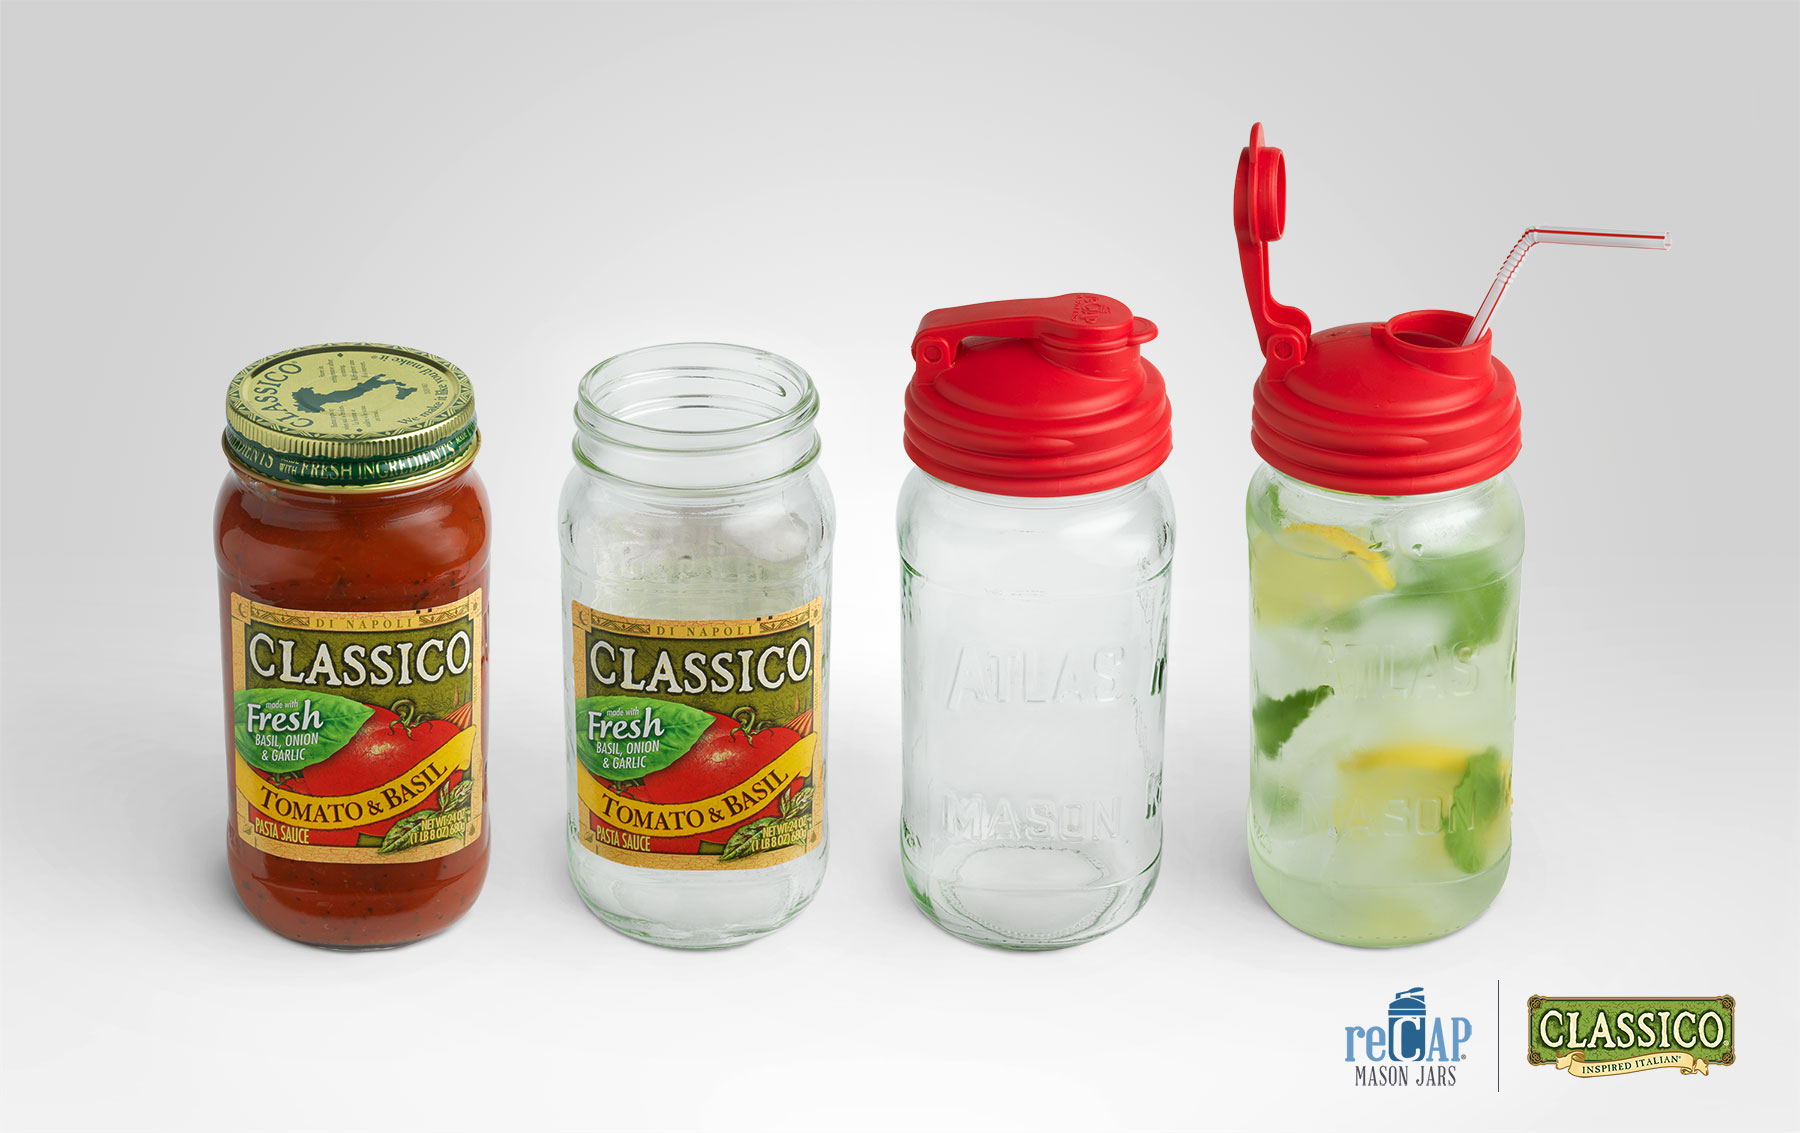 Classico Partners with reCAP to Encourage Consumers to